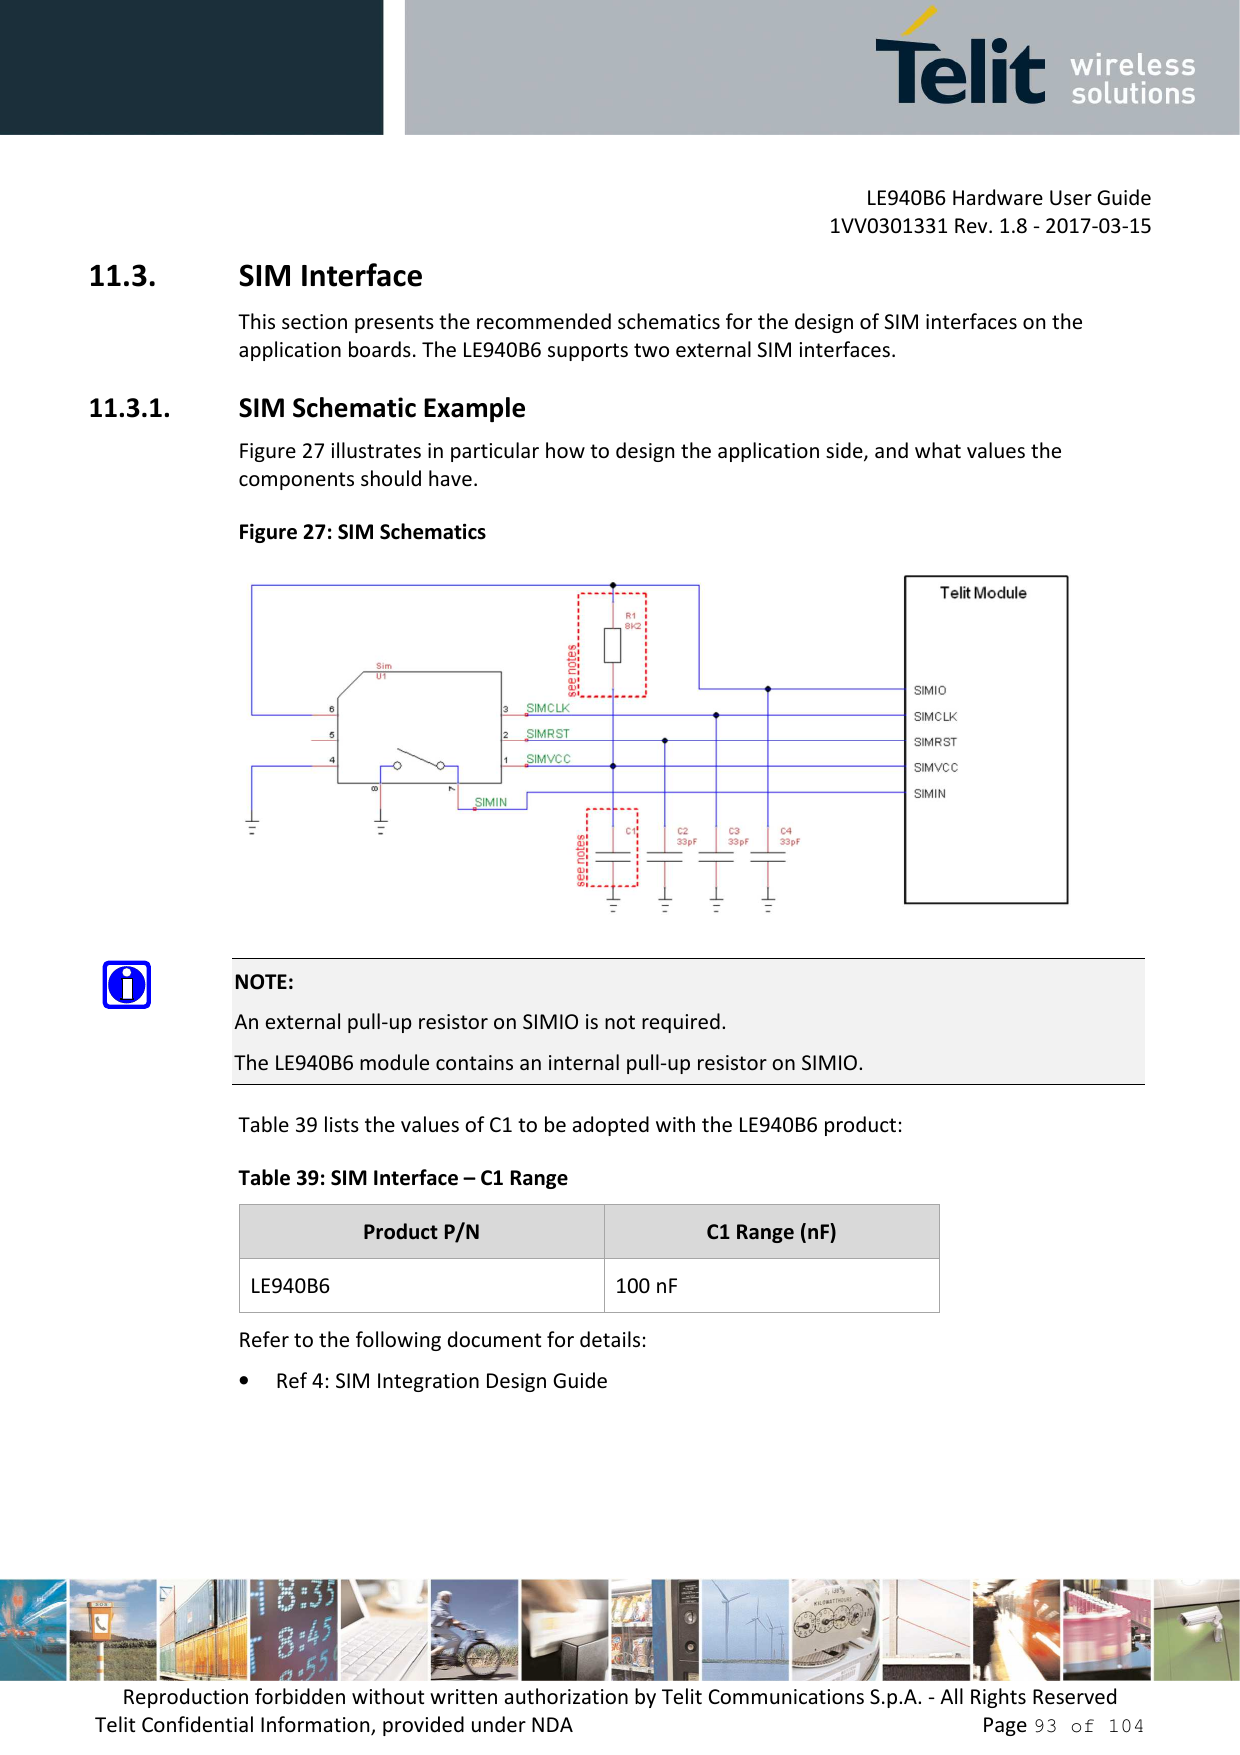 LE940B6 Hardware User Guide     1VV0301331 Rev. 1.8 - 2017-03-15 Reproduction forbidden without written authorization by Telit Communications S.p.A. - All Rights Reserved Telit Confidential Information, provided under NDA                 Page 93 of 104 11.3. SIM Interface This section presents the recommended schematics for the design of SIM interfaces on the application boards. The LE940B6 supports two external SIM interfaces. 11.3.1. SIM Schematic Example Figure 27 illustrates in particular how to design the application side, and what values the components should have. Figure 27: SIM Schematics   NOTE: An external pull-up resistor on SIMIO is not required. The LE940B6 module contains an internal pull-up resistor on SIMIO. Table 39 lists the values of C1 to be adopted with the LE940B6 product: Table 39: SIM Interface – C1 Range Product P/N  C1 Range (nF) LE940B6  100 nF Refer to the following document for details: • Ref 4: SIM Integration Design Guide